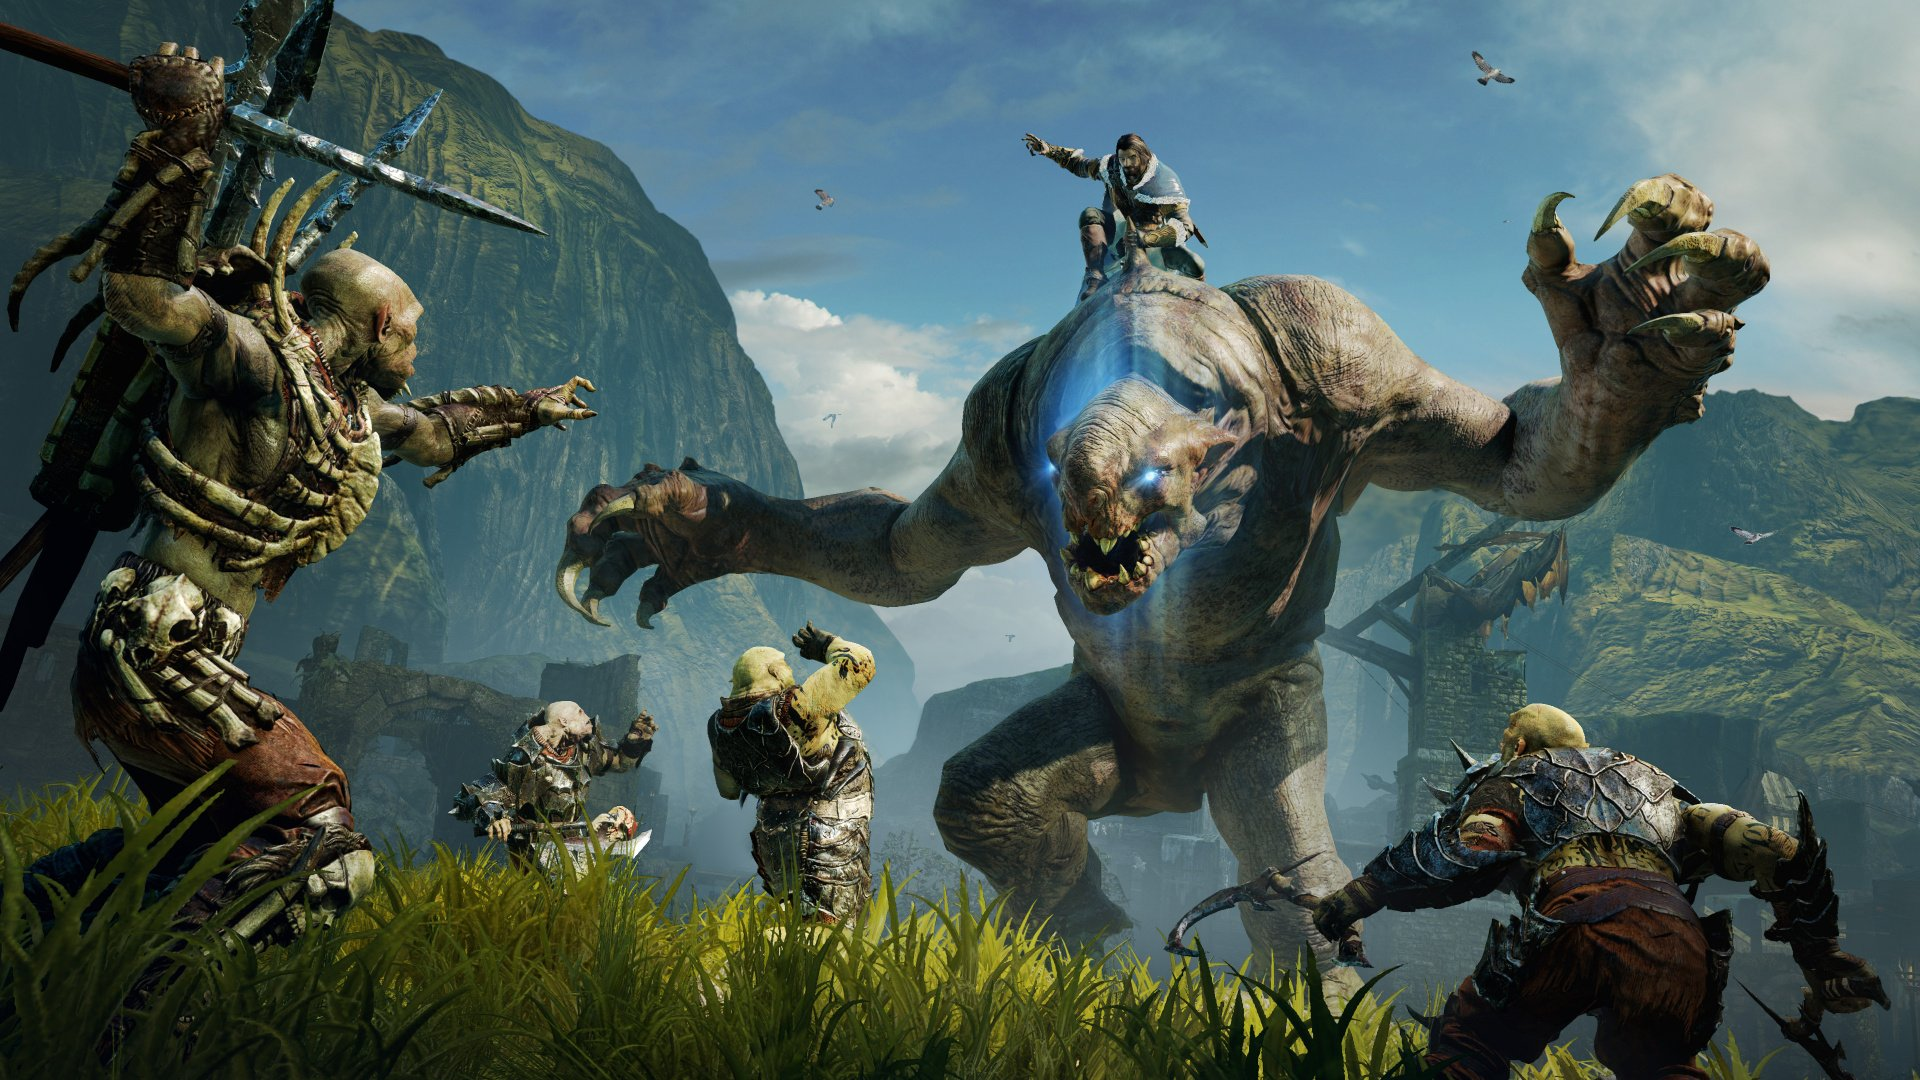 Middle-earth: Shadow of Mordor Review (PS4) | Push Square on moria middle earth map, shadow of mordor middle earth wallpaper, shadow of mordor middle earth character skins, hobbit middle earth map, tolkien middle earth map, shadow of mordor middle earth xbox 360, shadow of mordor middle earth gollum, shadow of mordor middle earth review,